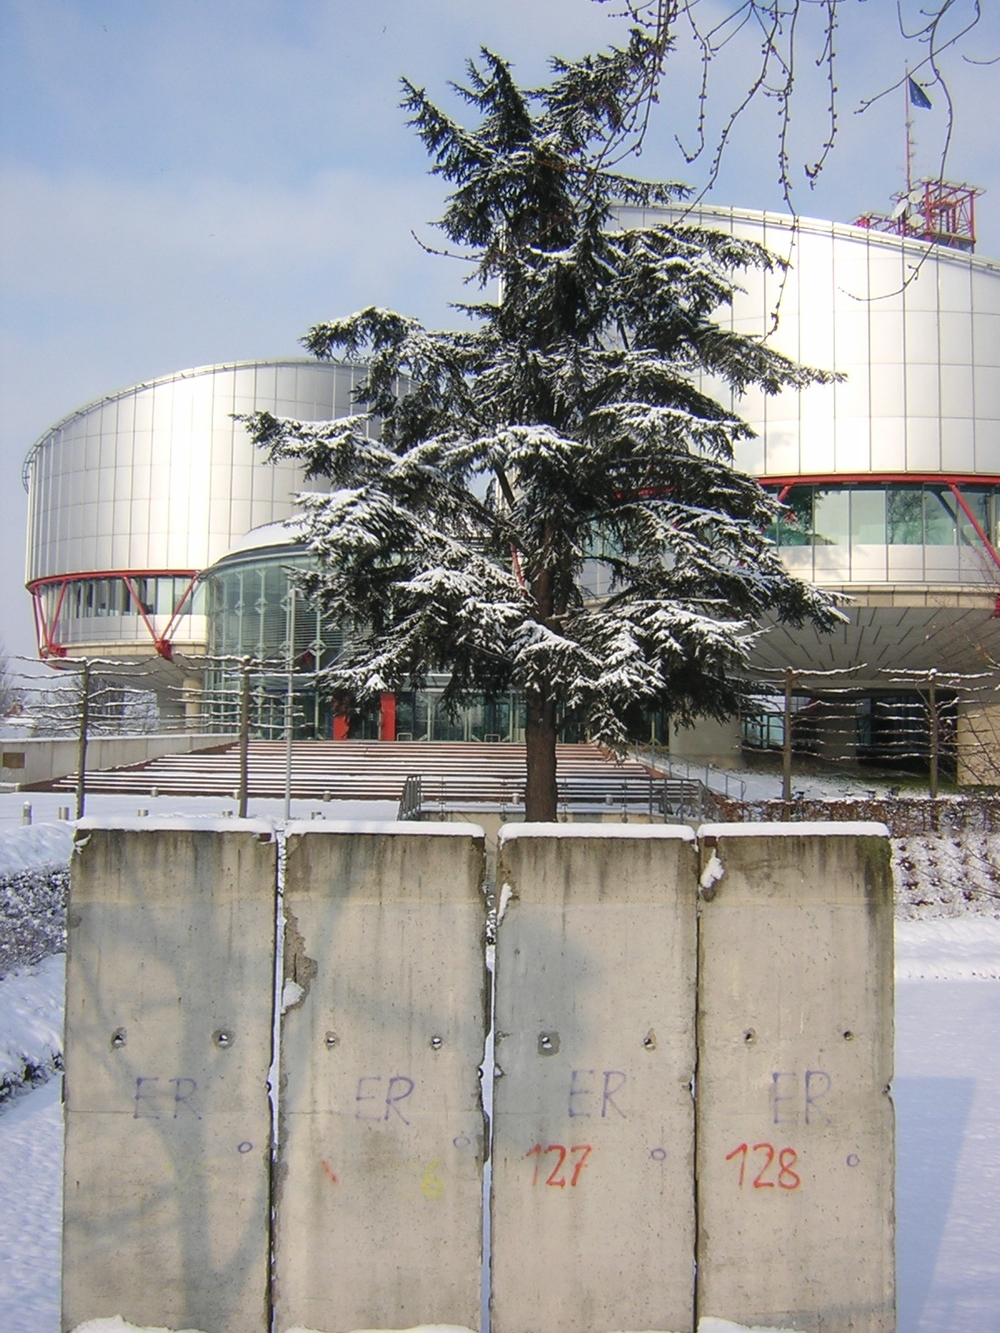 A remnant of the berlin wall placed in front of the european court of human rights in strasbourg.   credit: By francois from Strasbourg, france [CC BY 2.0 (http://creativecommons.org/licenses/by/2.0)], via Wikimedia Commons.